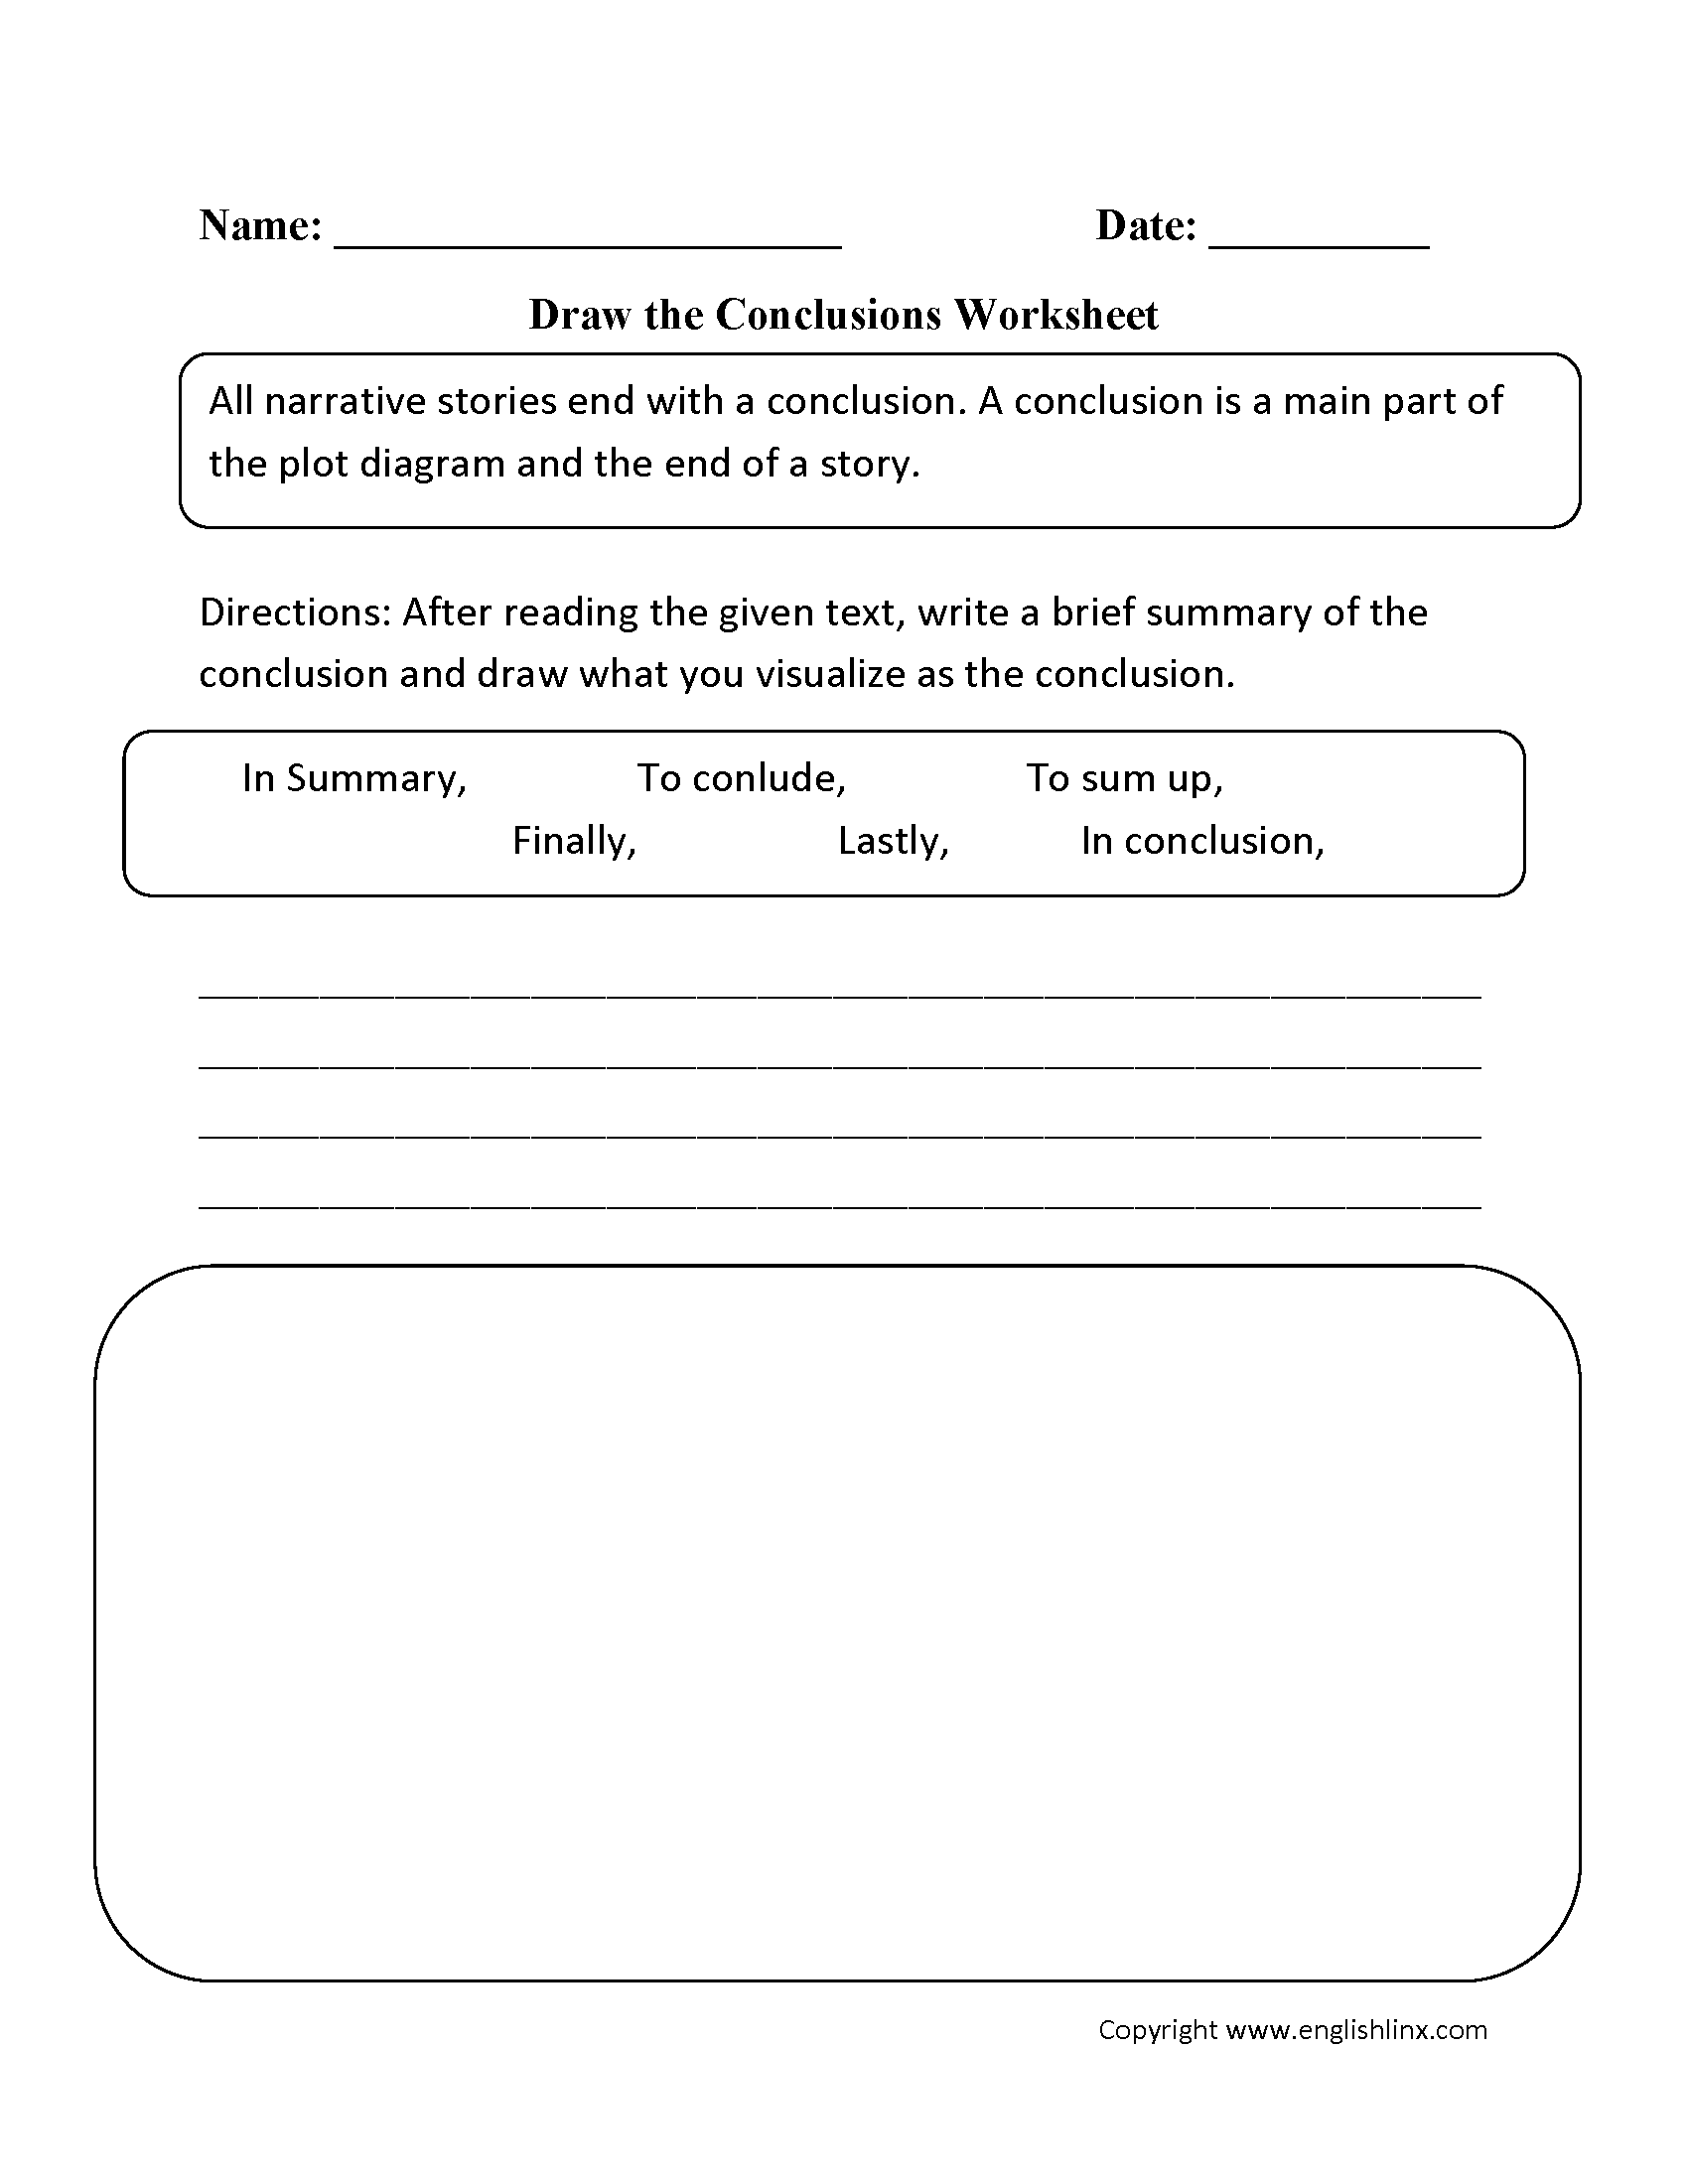 Draw The Conclusions Worksheet